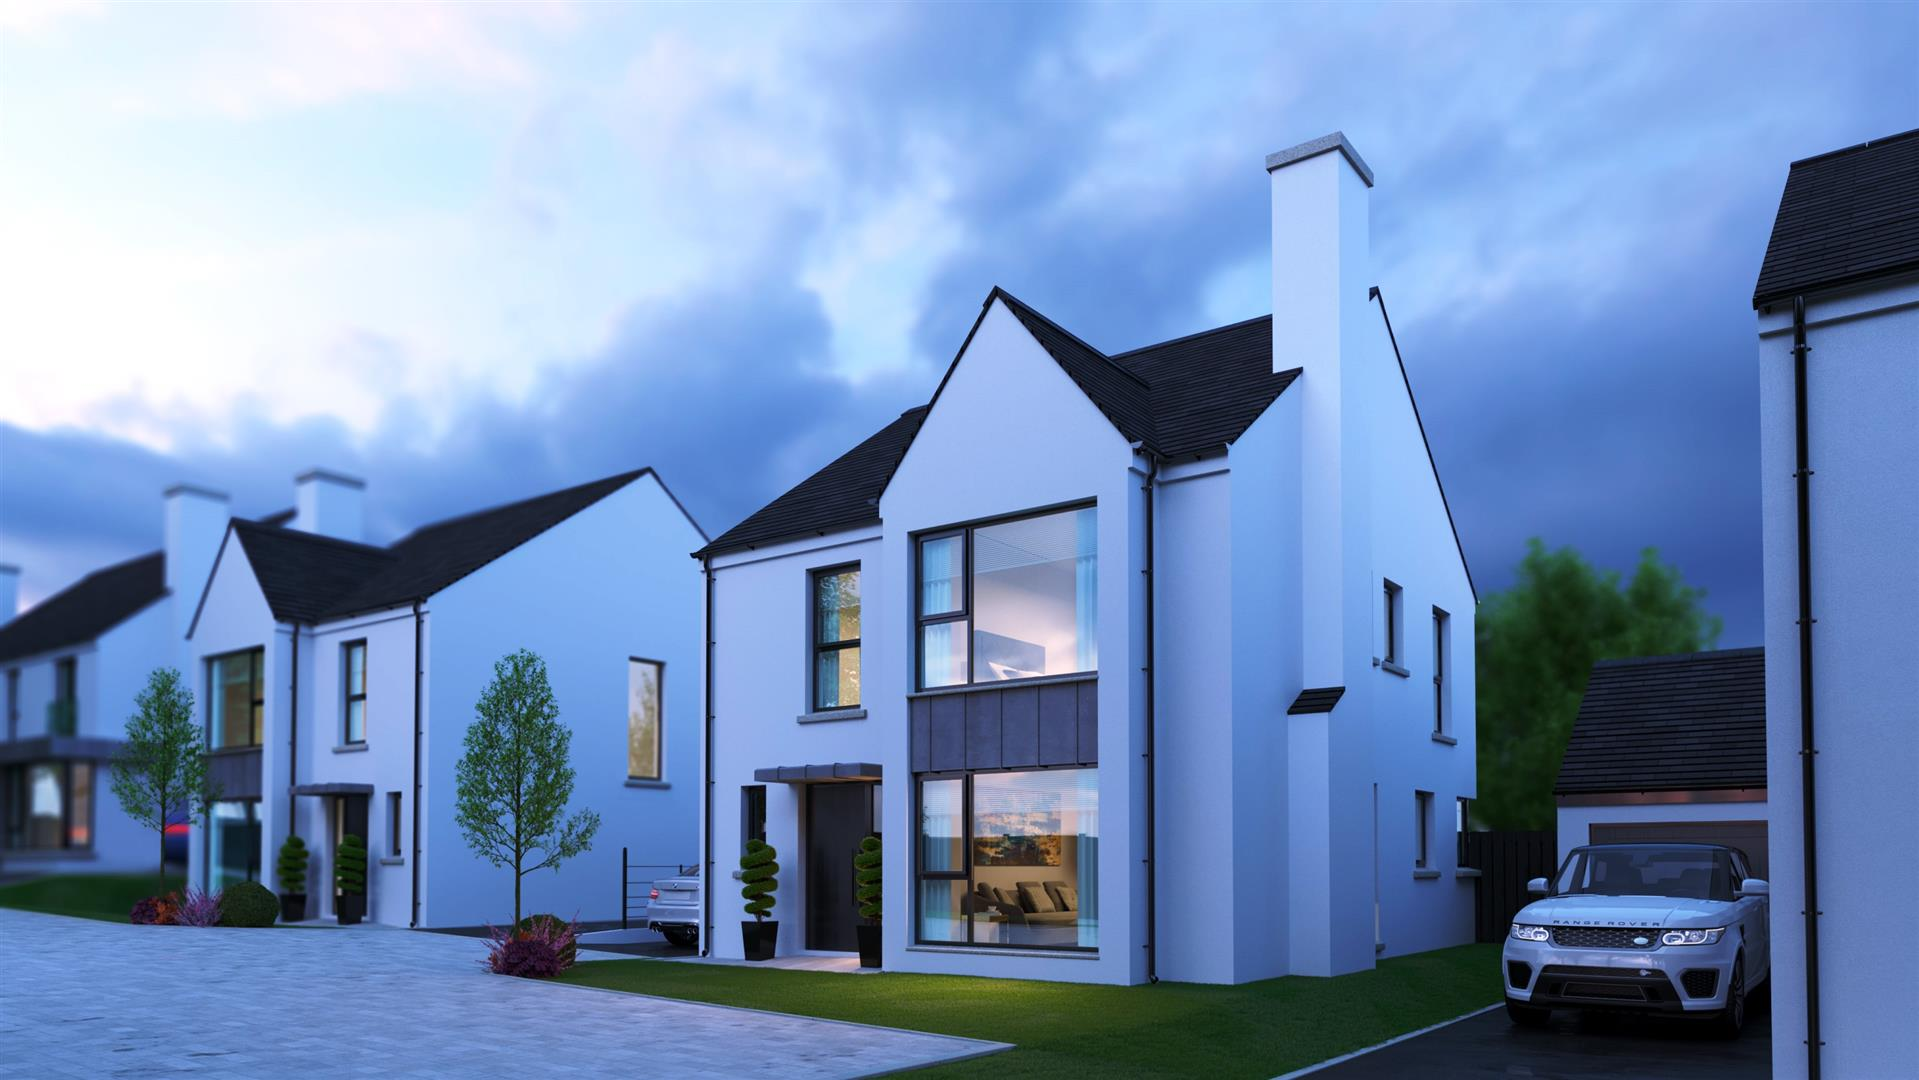 Site 7 Cranagh View, Portstewart Road